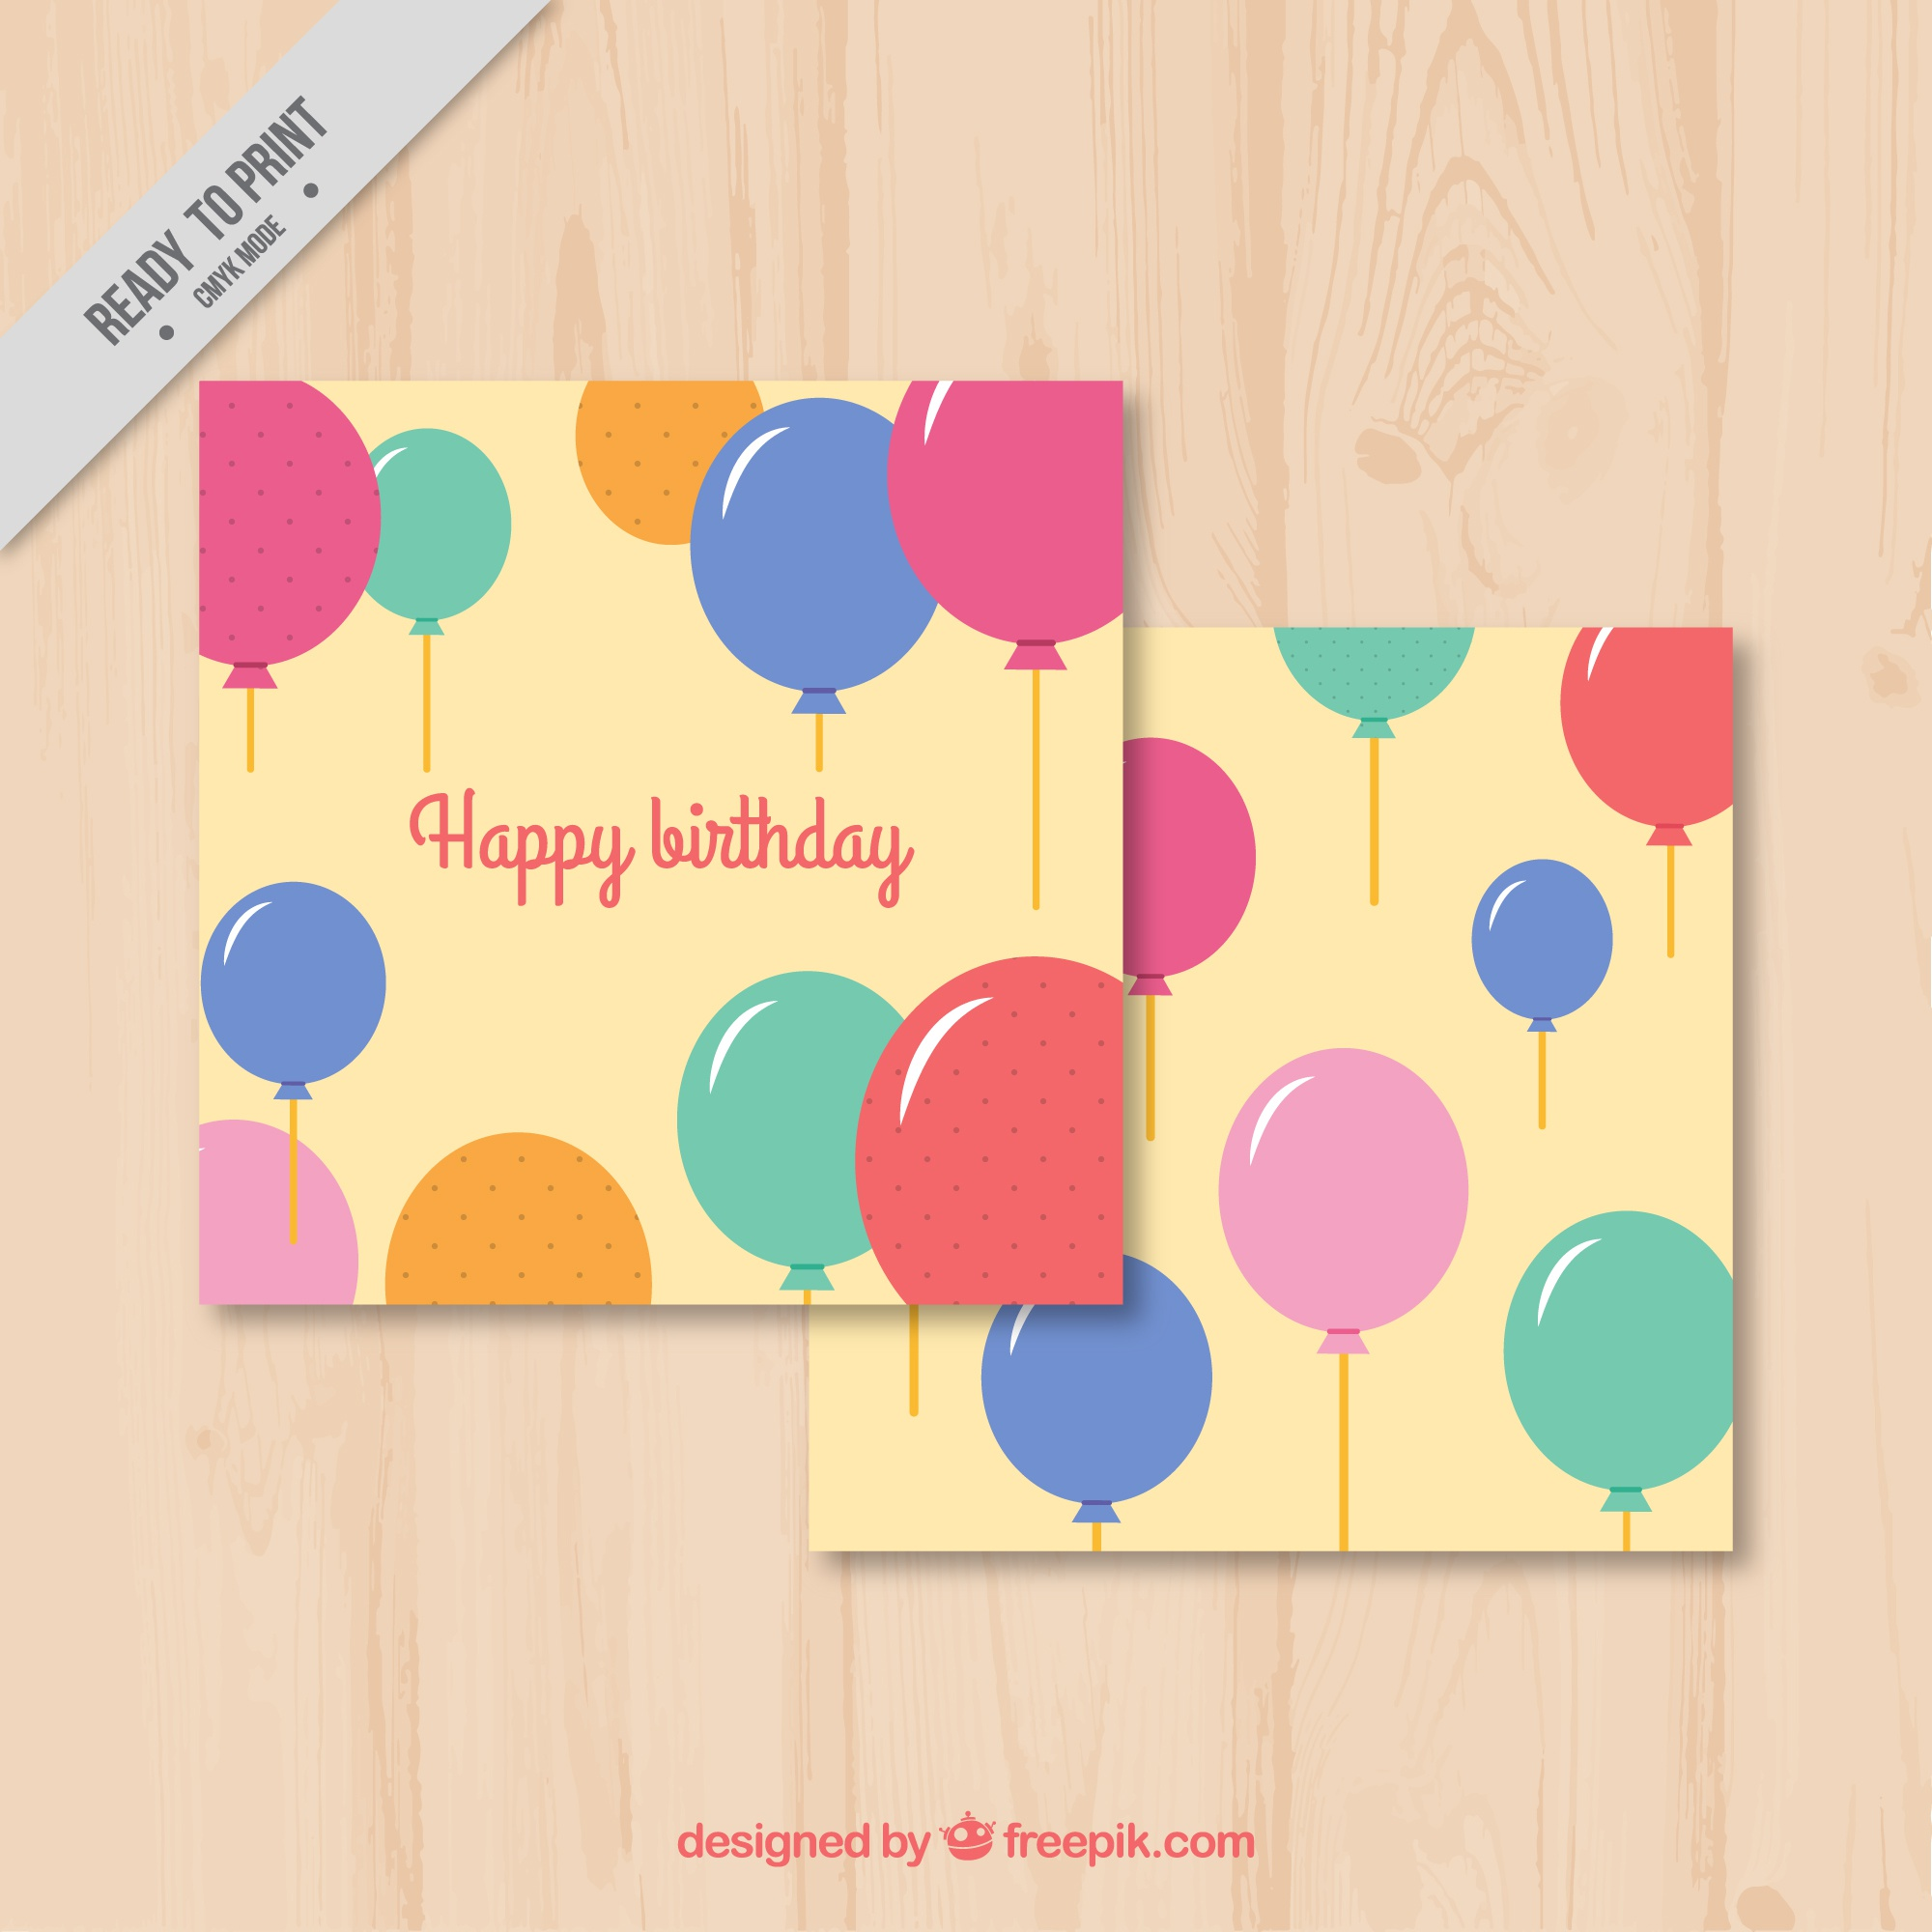 Birthday greeting card of balloons with different colors